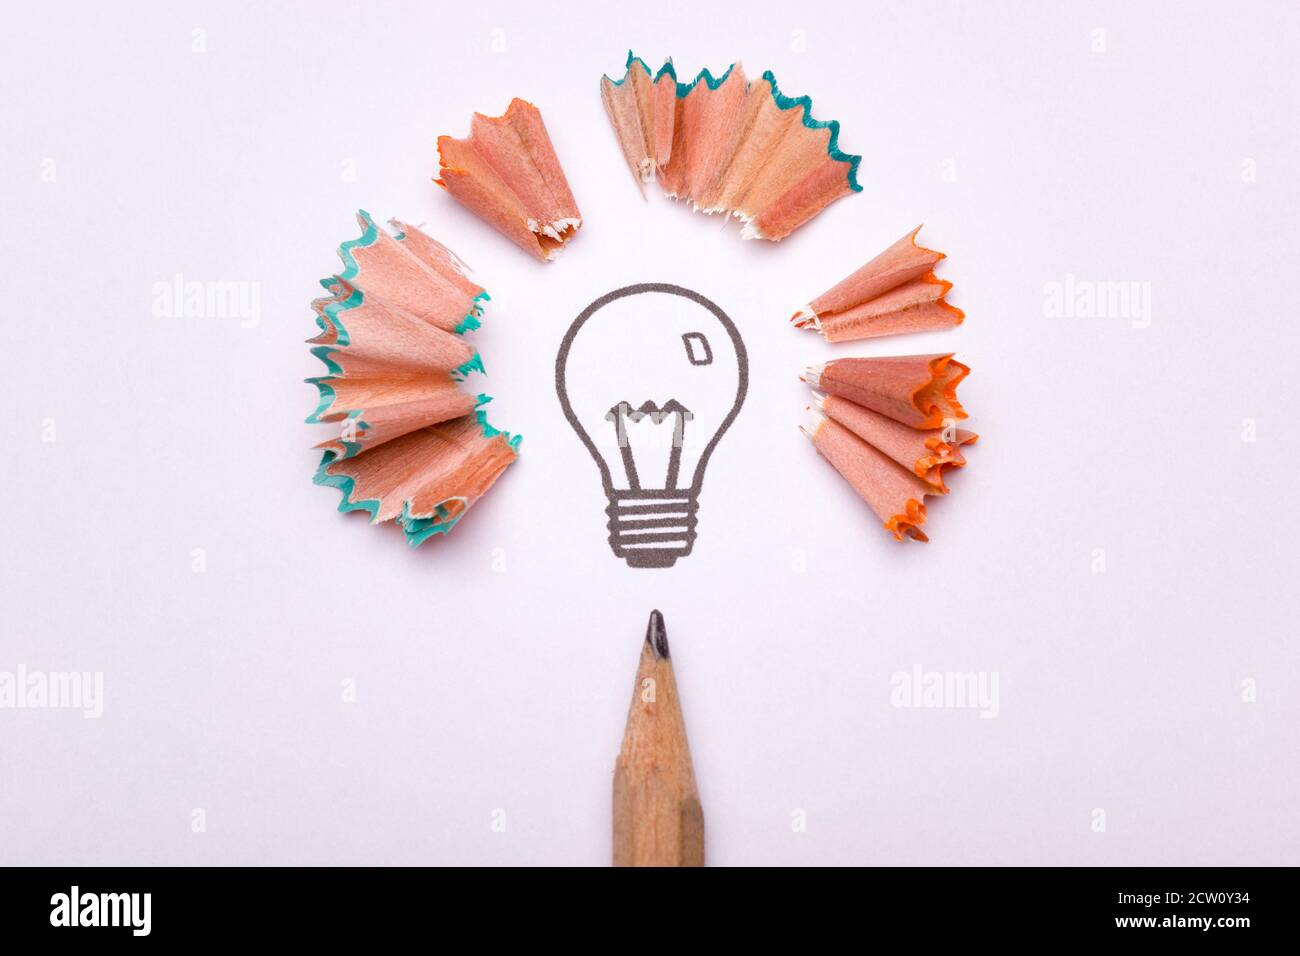 A light bulb surrounded by sharpener waste and a pencil as a symbol of creativity Stock Photo